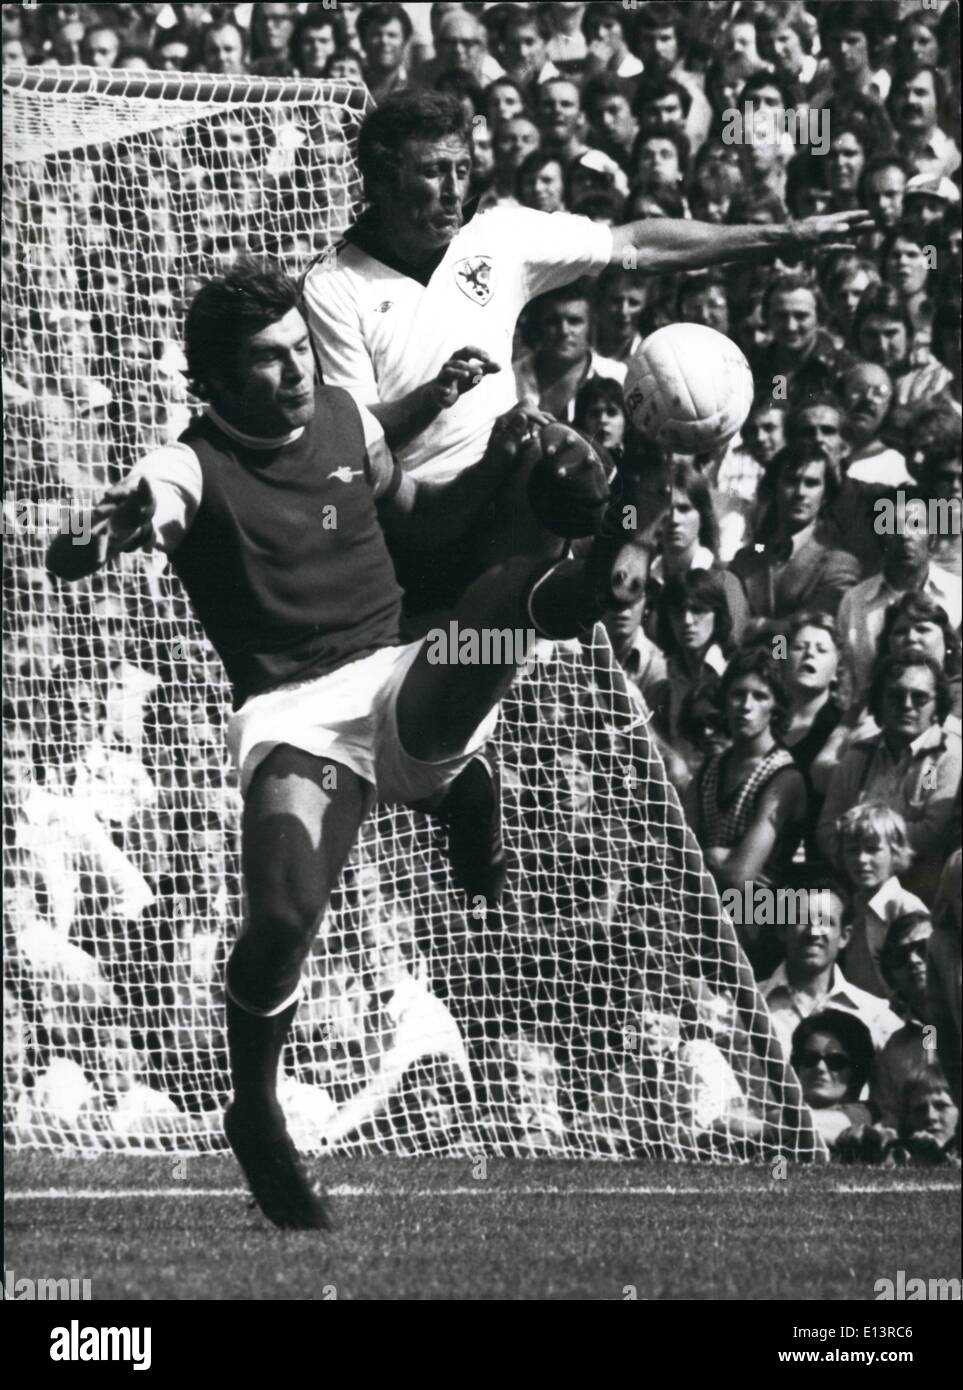 Mar. 27, 2012 - Toling It.: Malcolm MacDonald (Arsenal) reaches the ball with his toe 5 feet above the ground. In close attendance is Bristol City's Geoff Merrick. - Stock Image